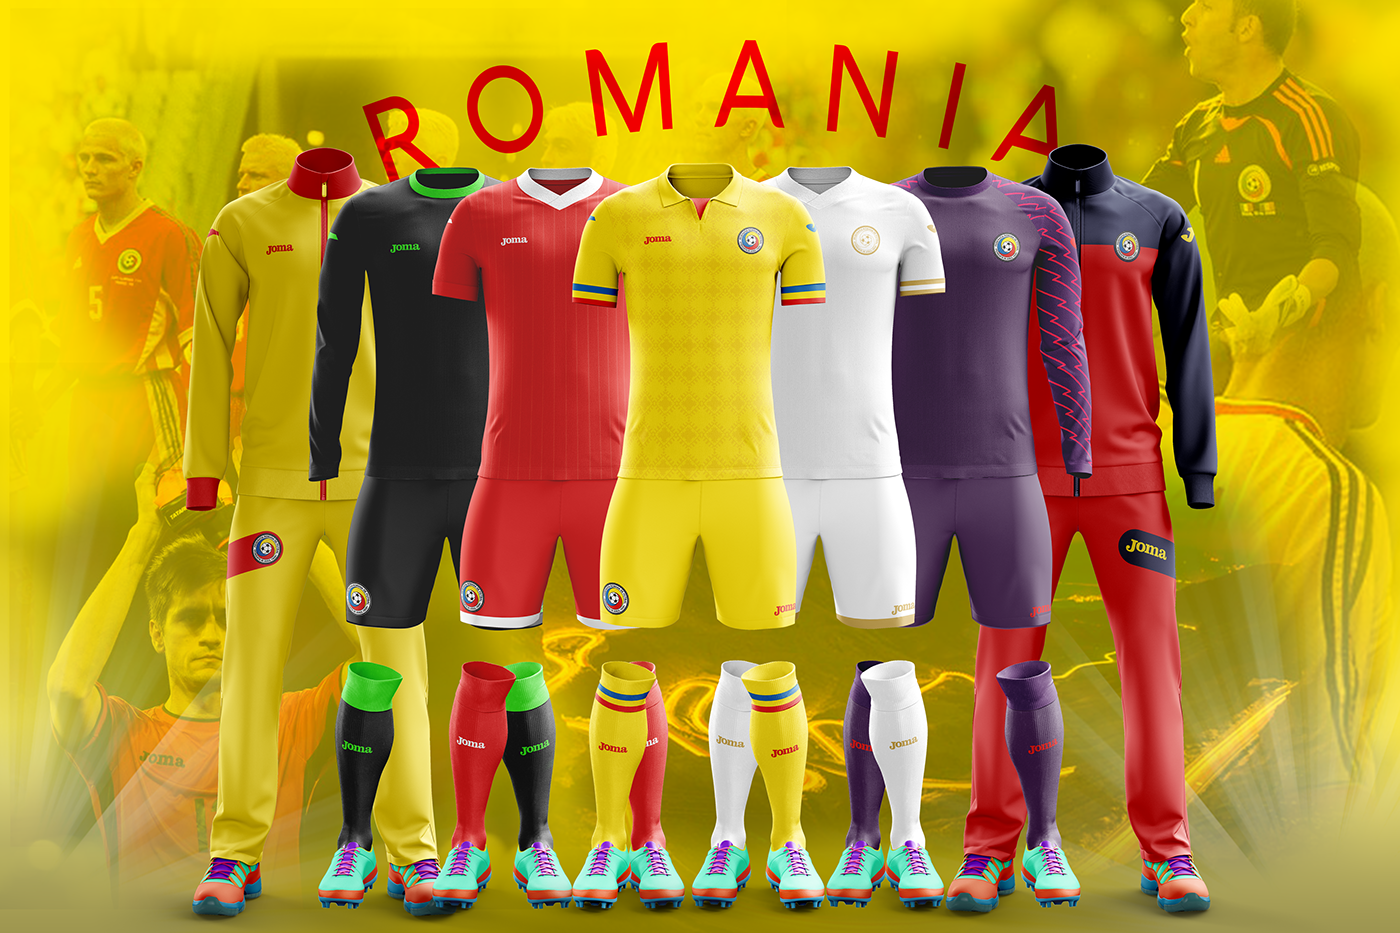 Romania x Joma - 2017-18 kits on Behance 8f5d38e60